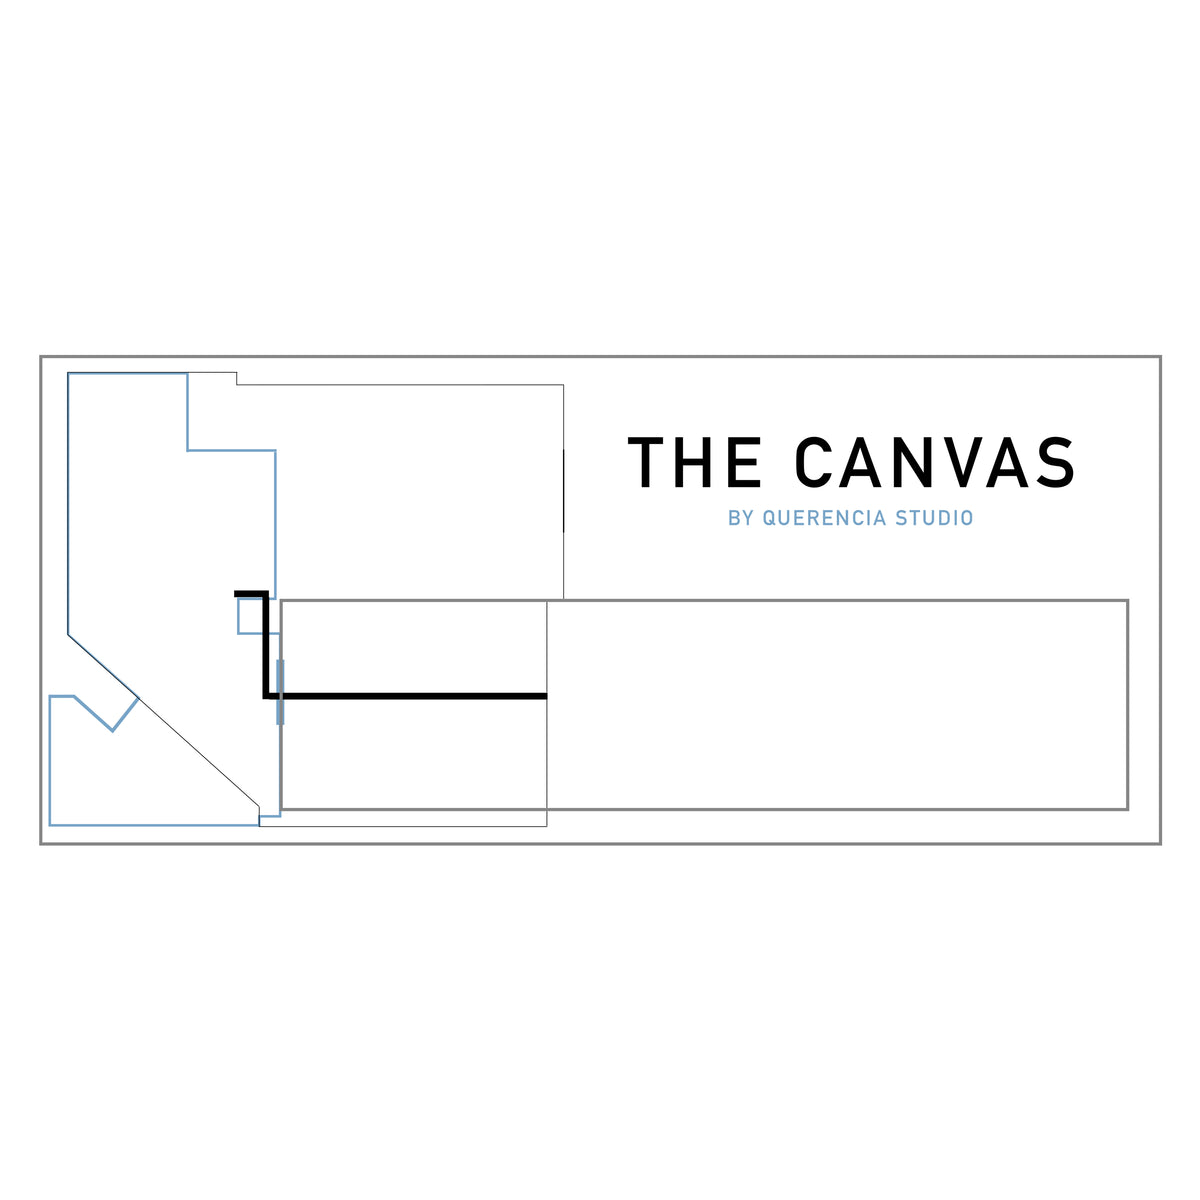 EVENTS – The Canvas by Querencia Studio